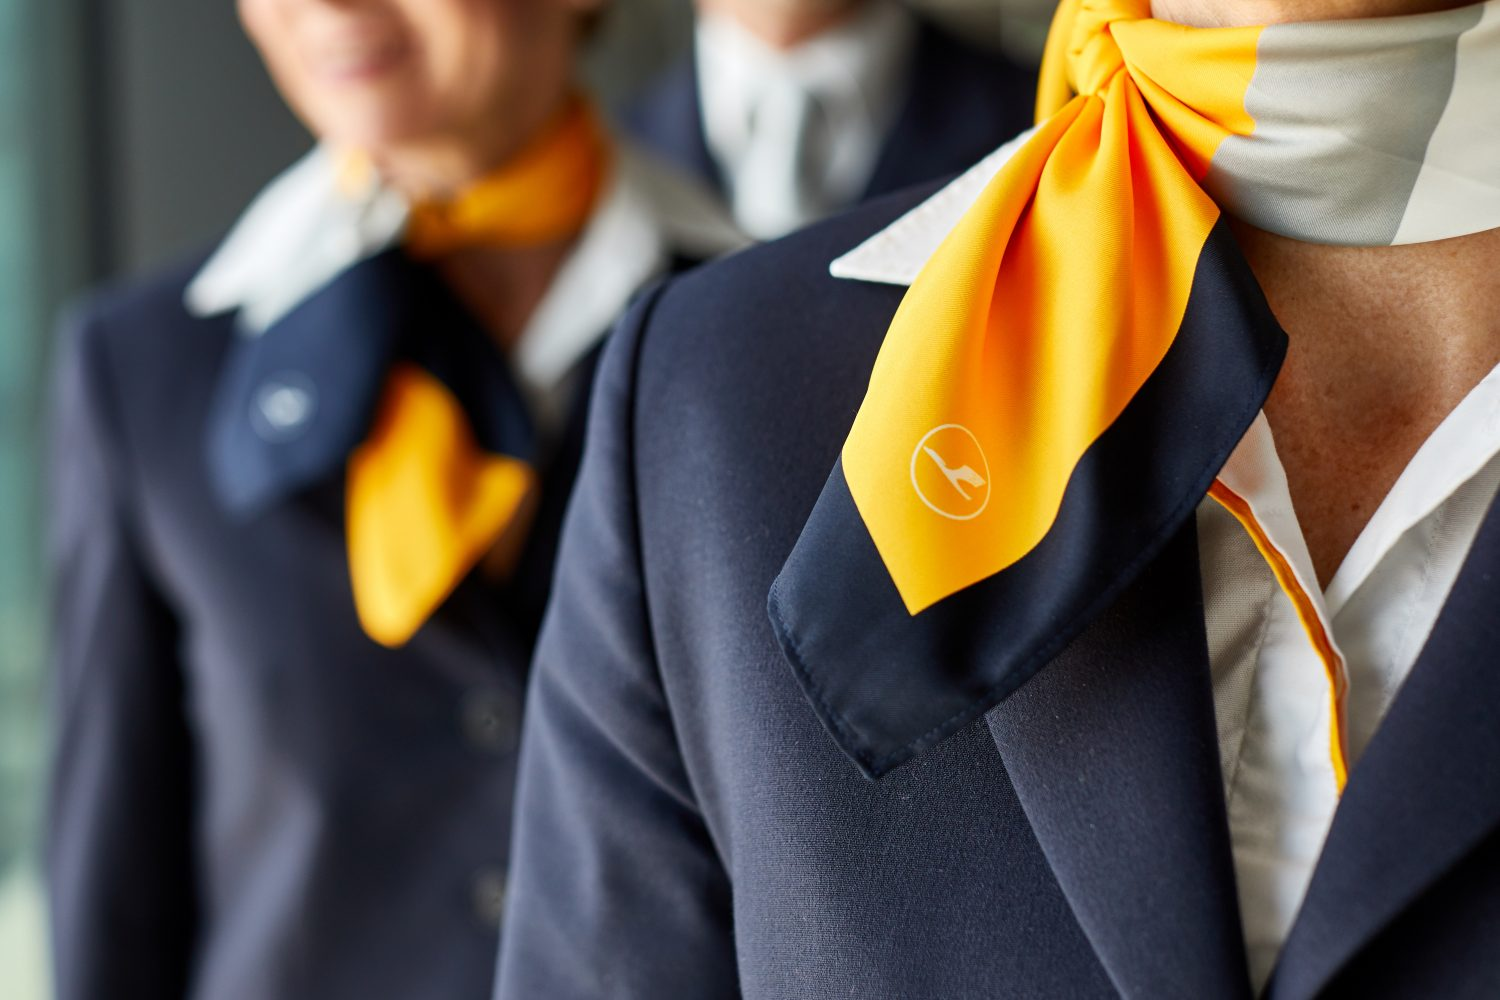 Lufthansa connects Singapore and Munich daily as of June 2019